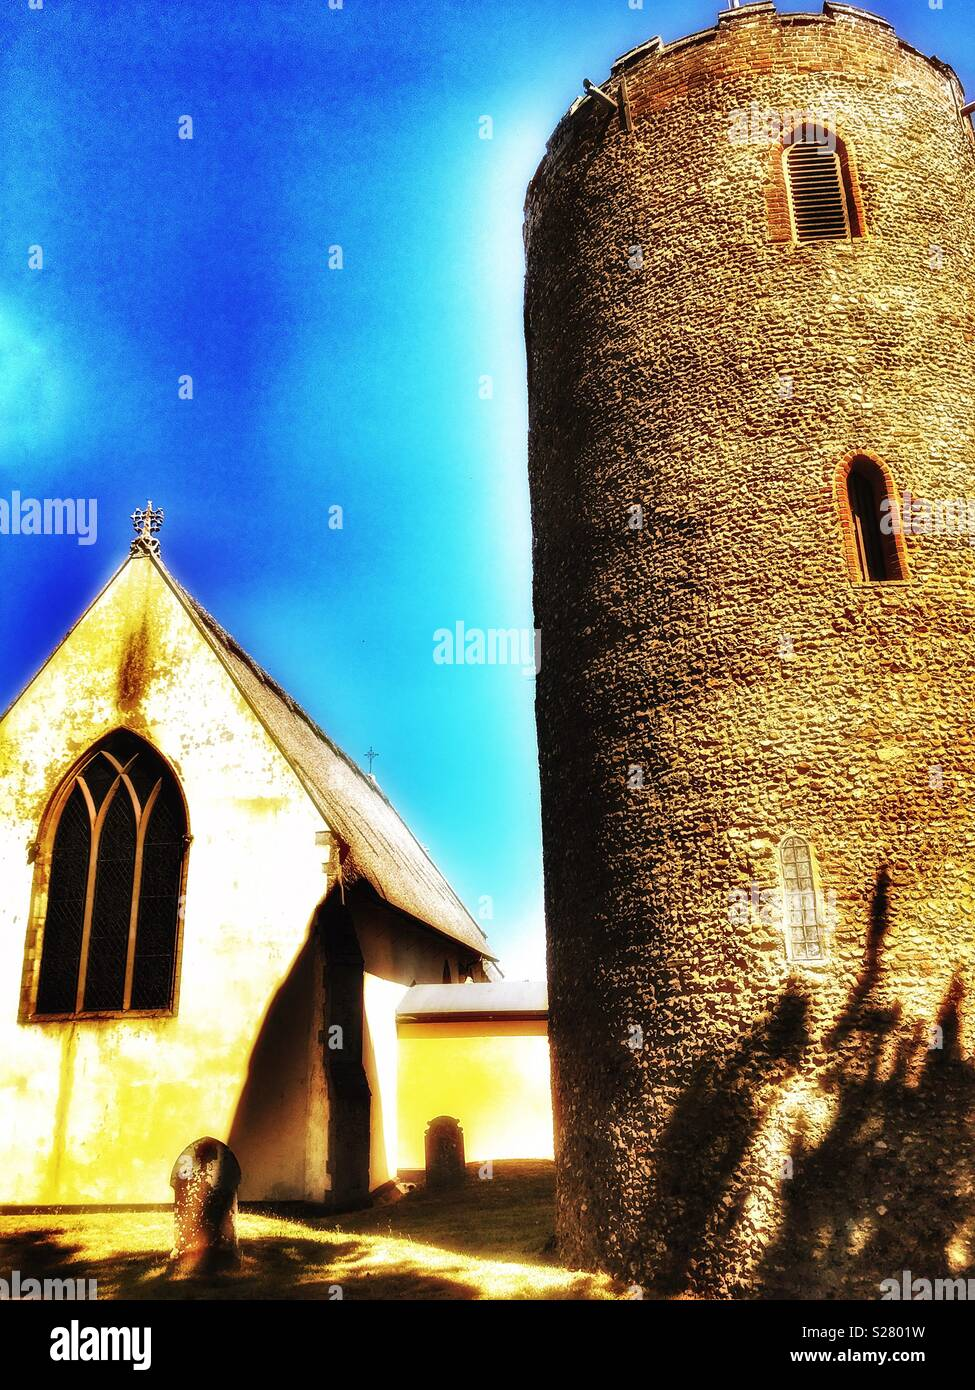 Church and separated tower, Bradfield, Suffolk, England. - Stock Image